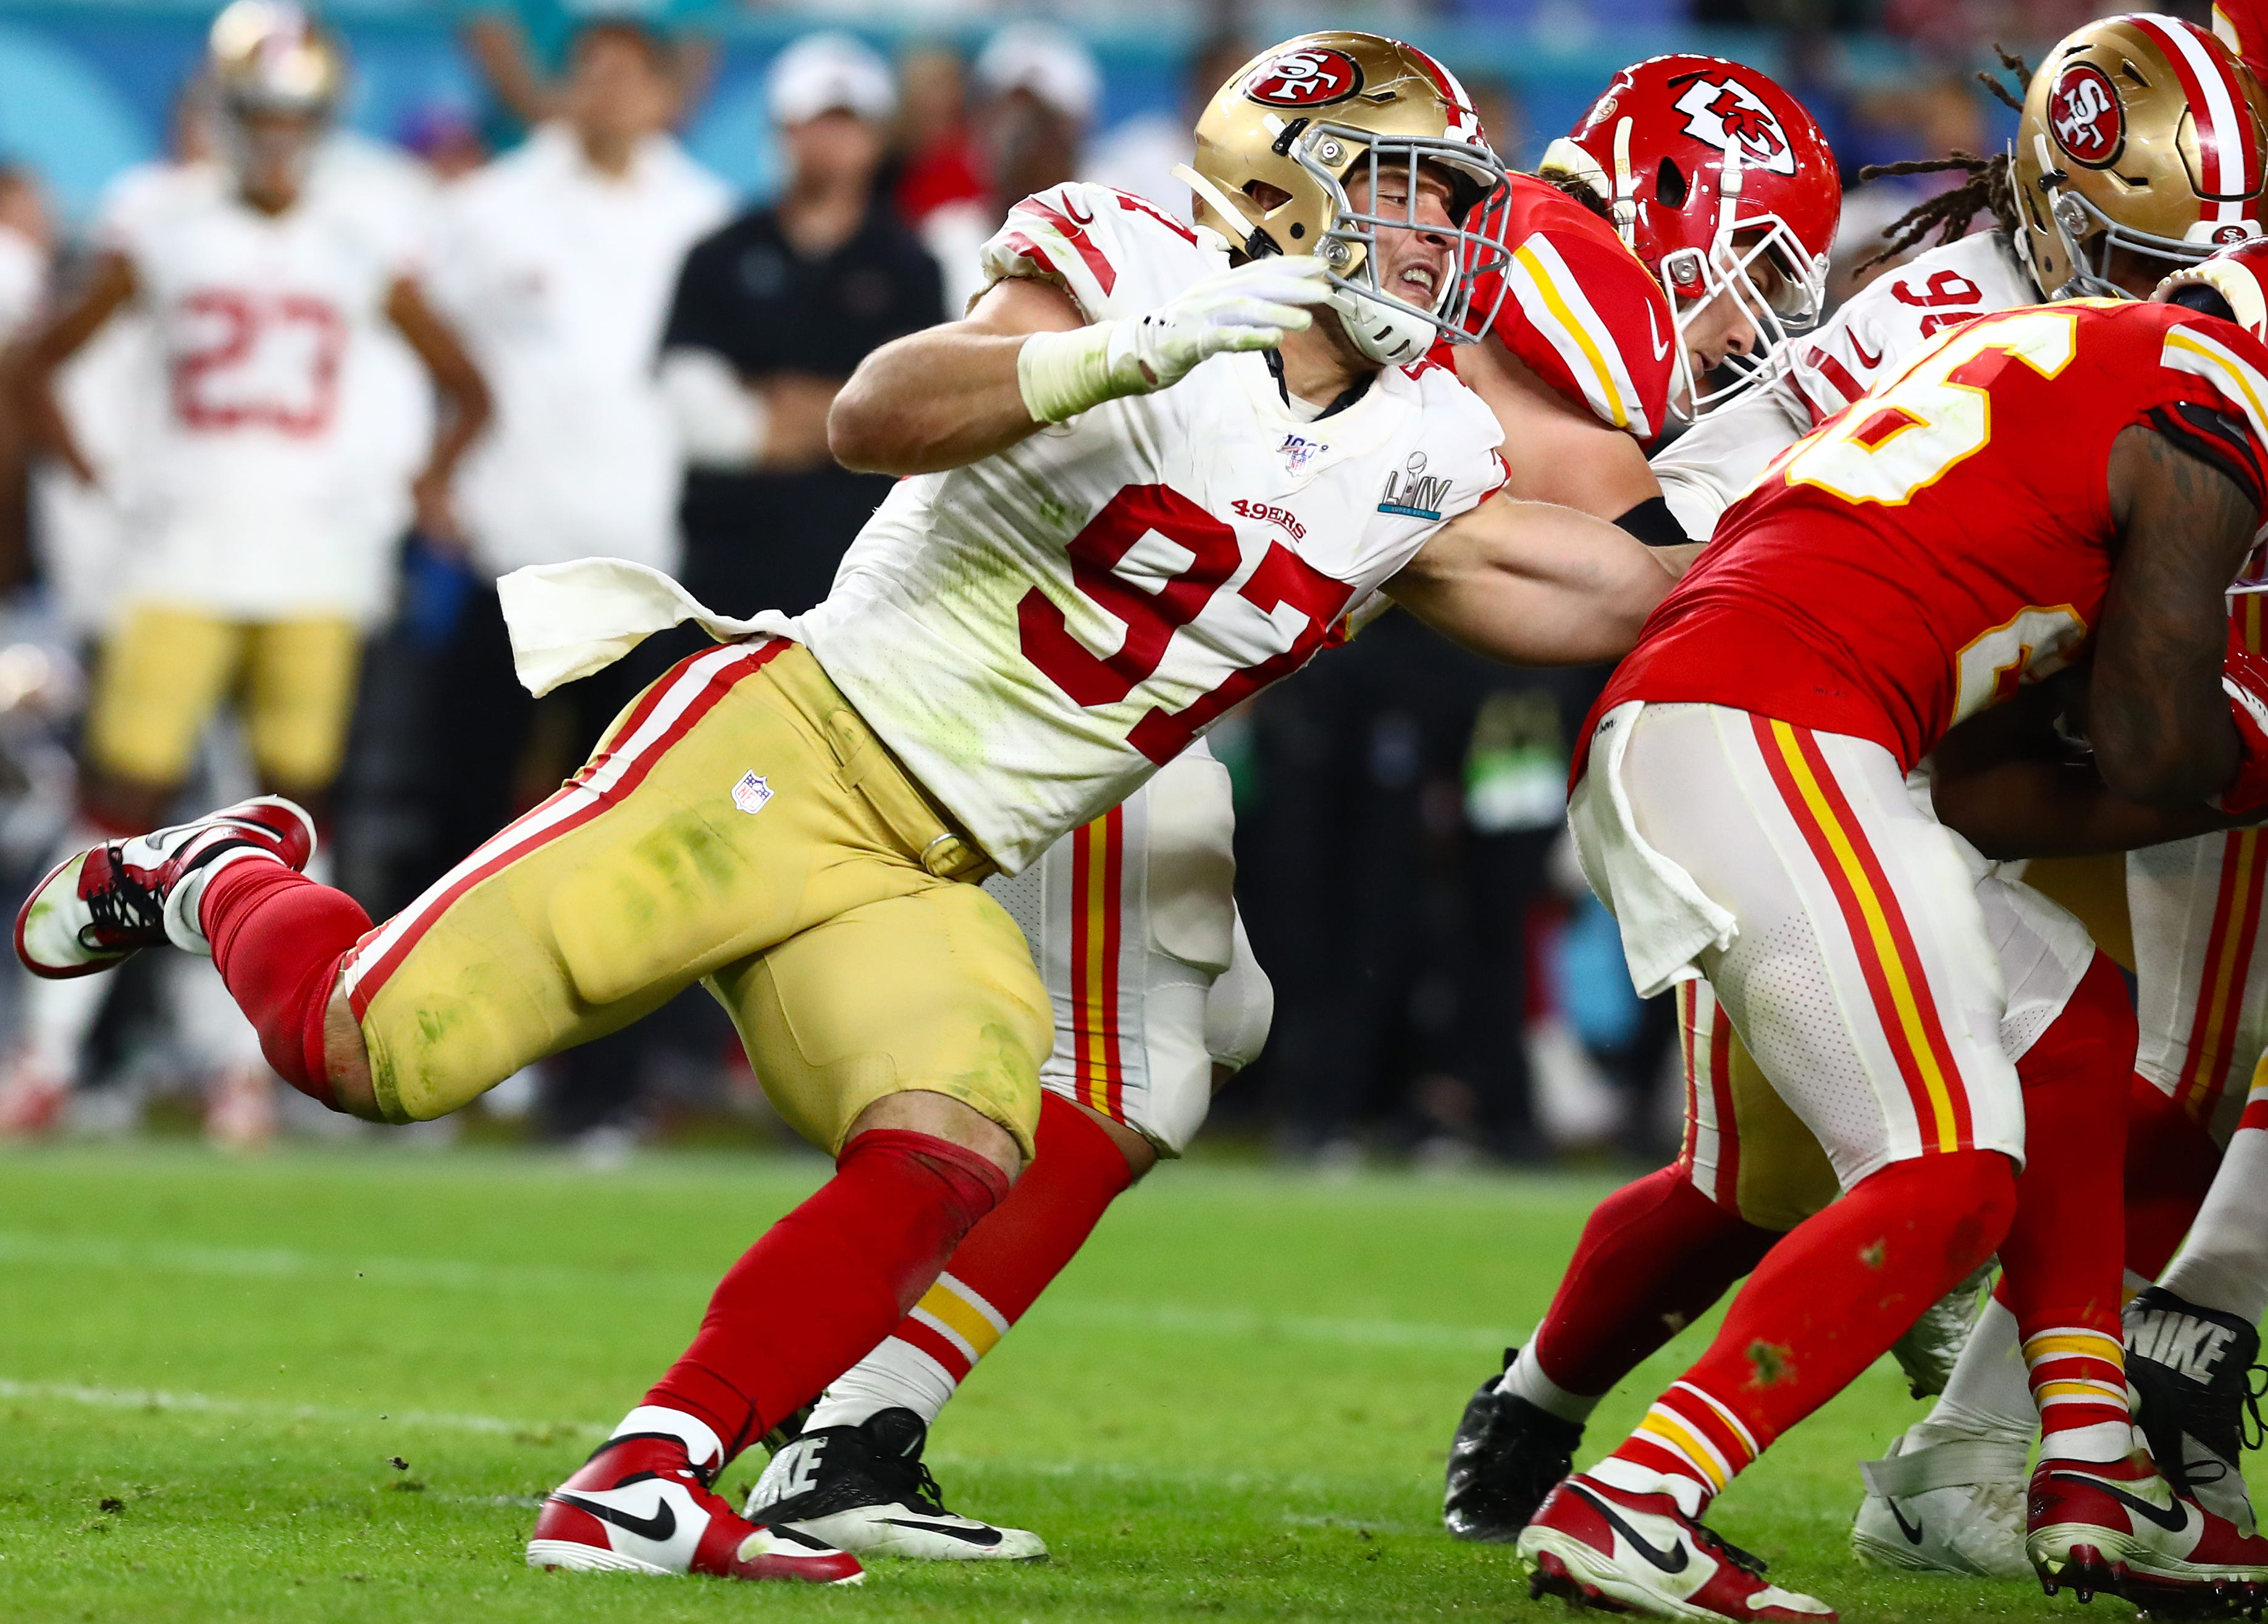 DE Nick Bosa (97) helped fuel the 49ers' charge to Super Bowl 54 during the 2019 season.